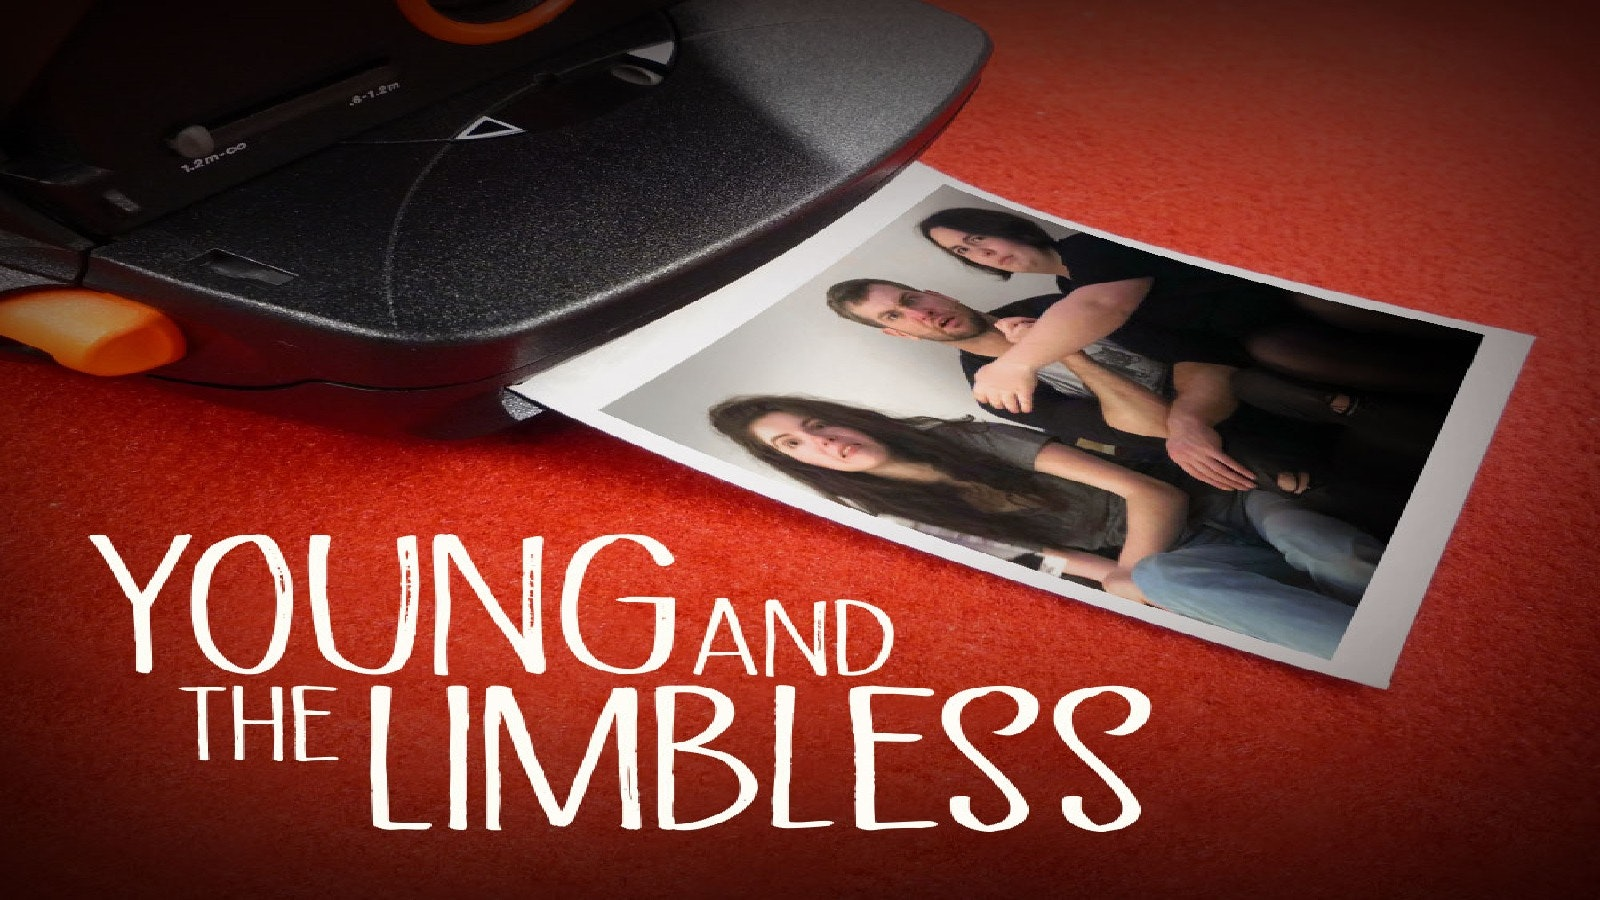 Young and the Limbless